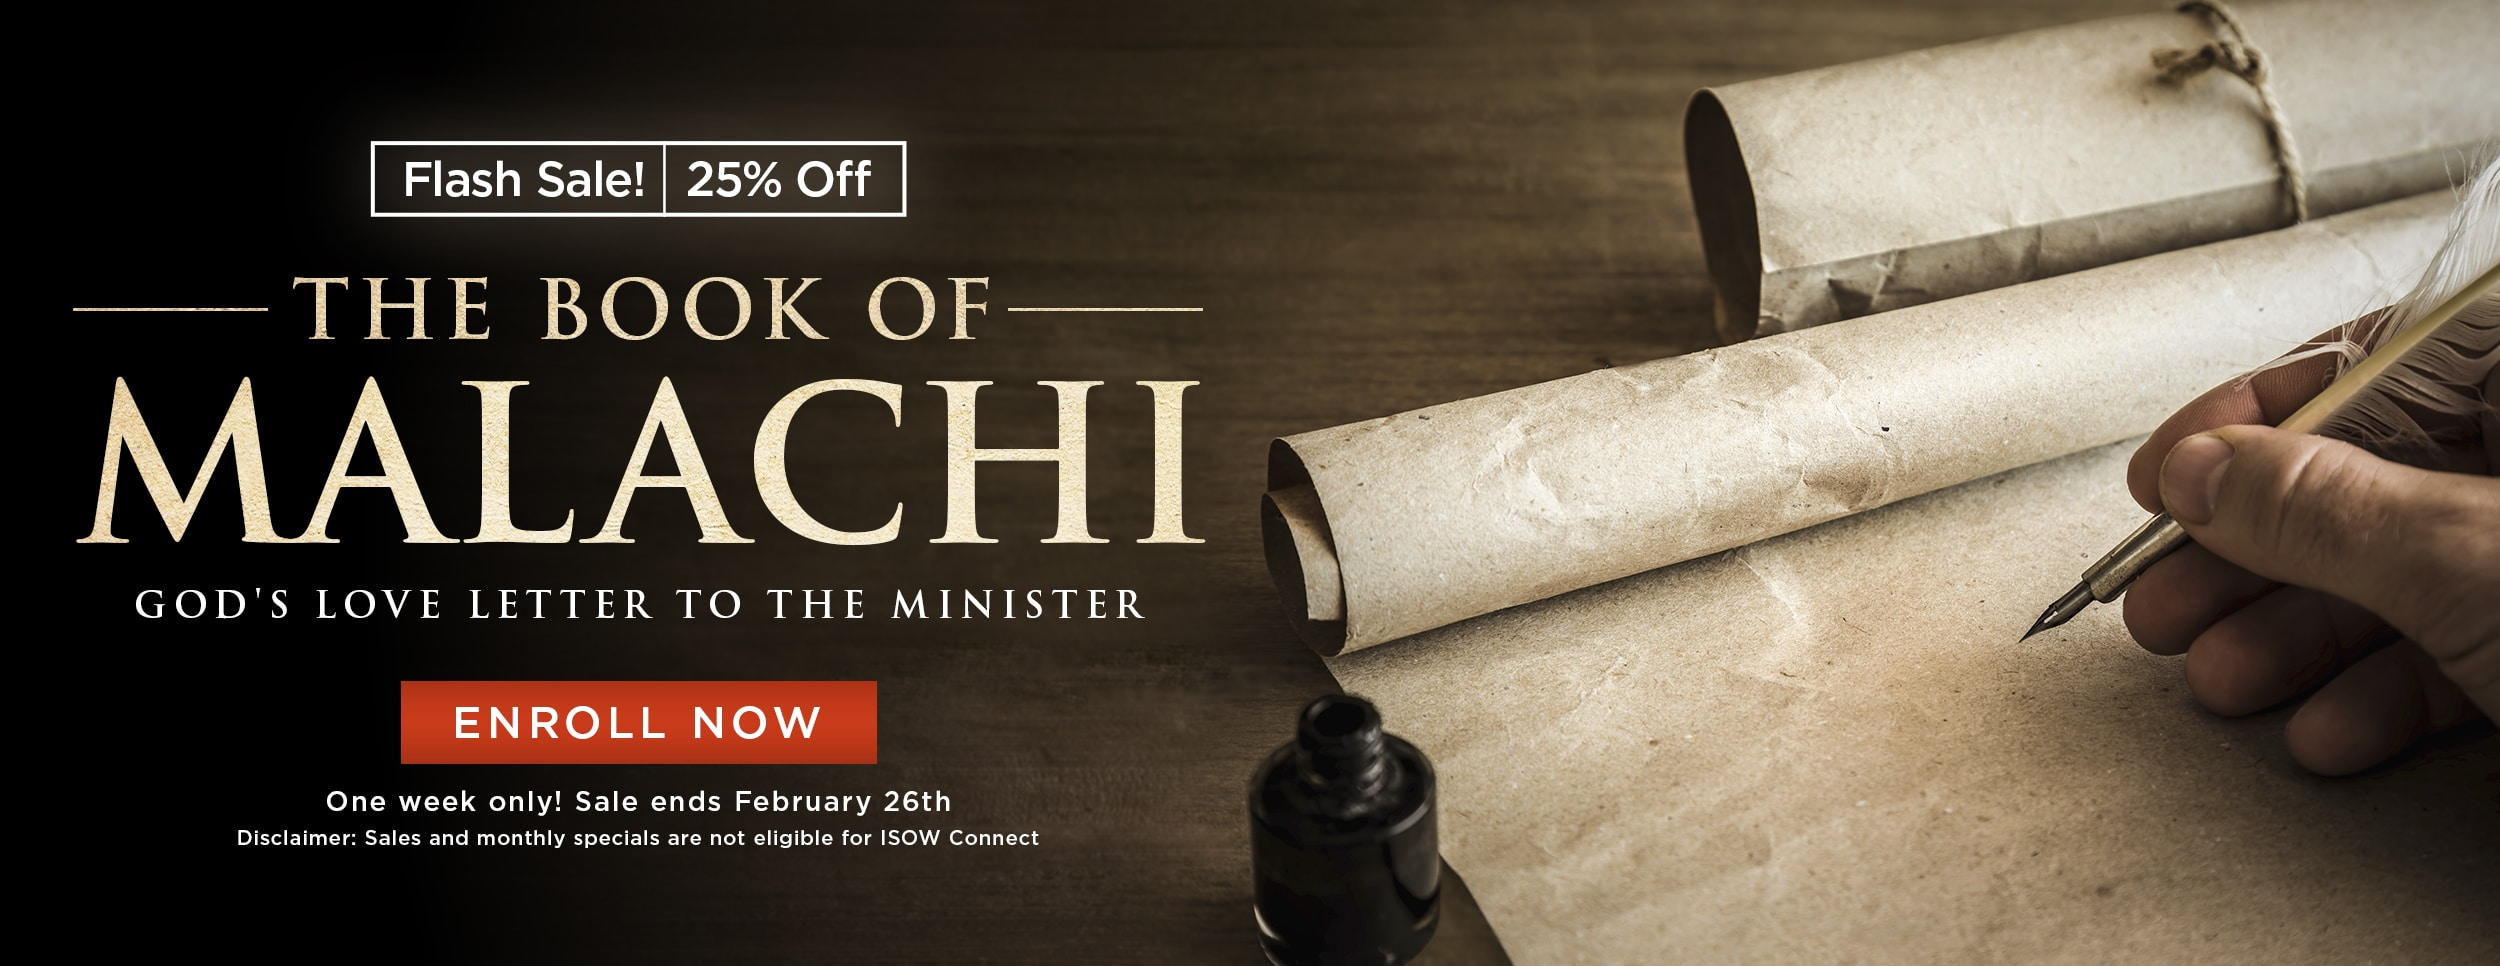 The_Book_of_Malachi_Flash_Sale_Website_Banner